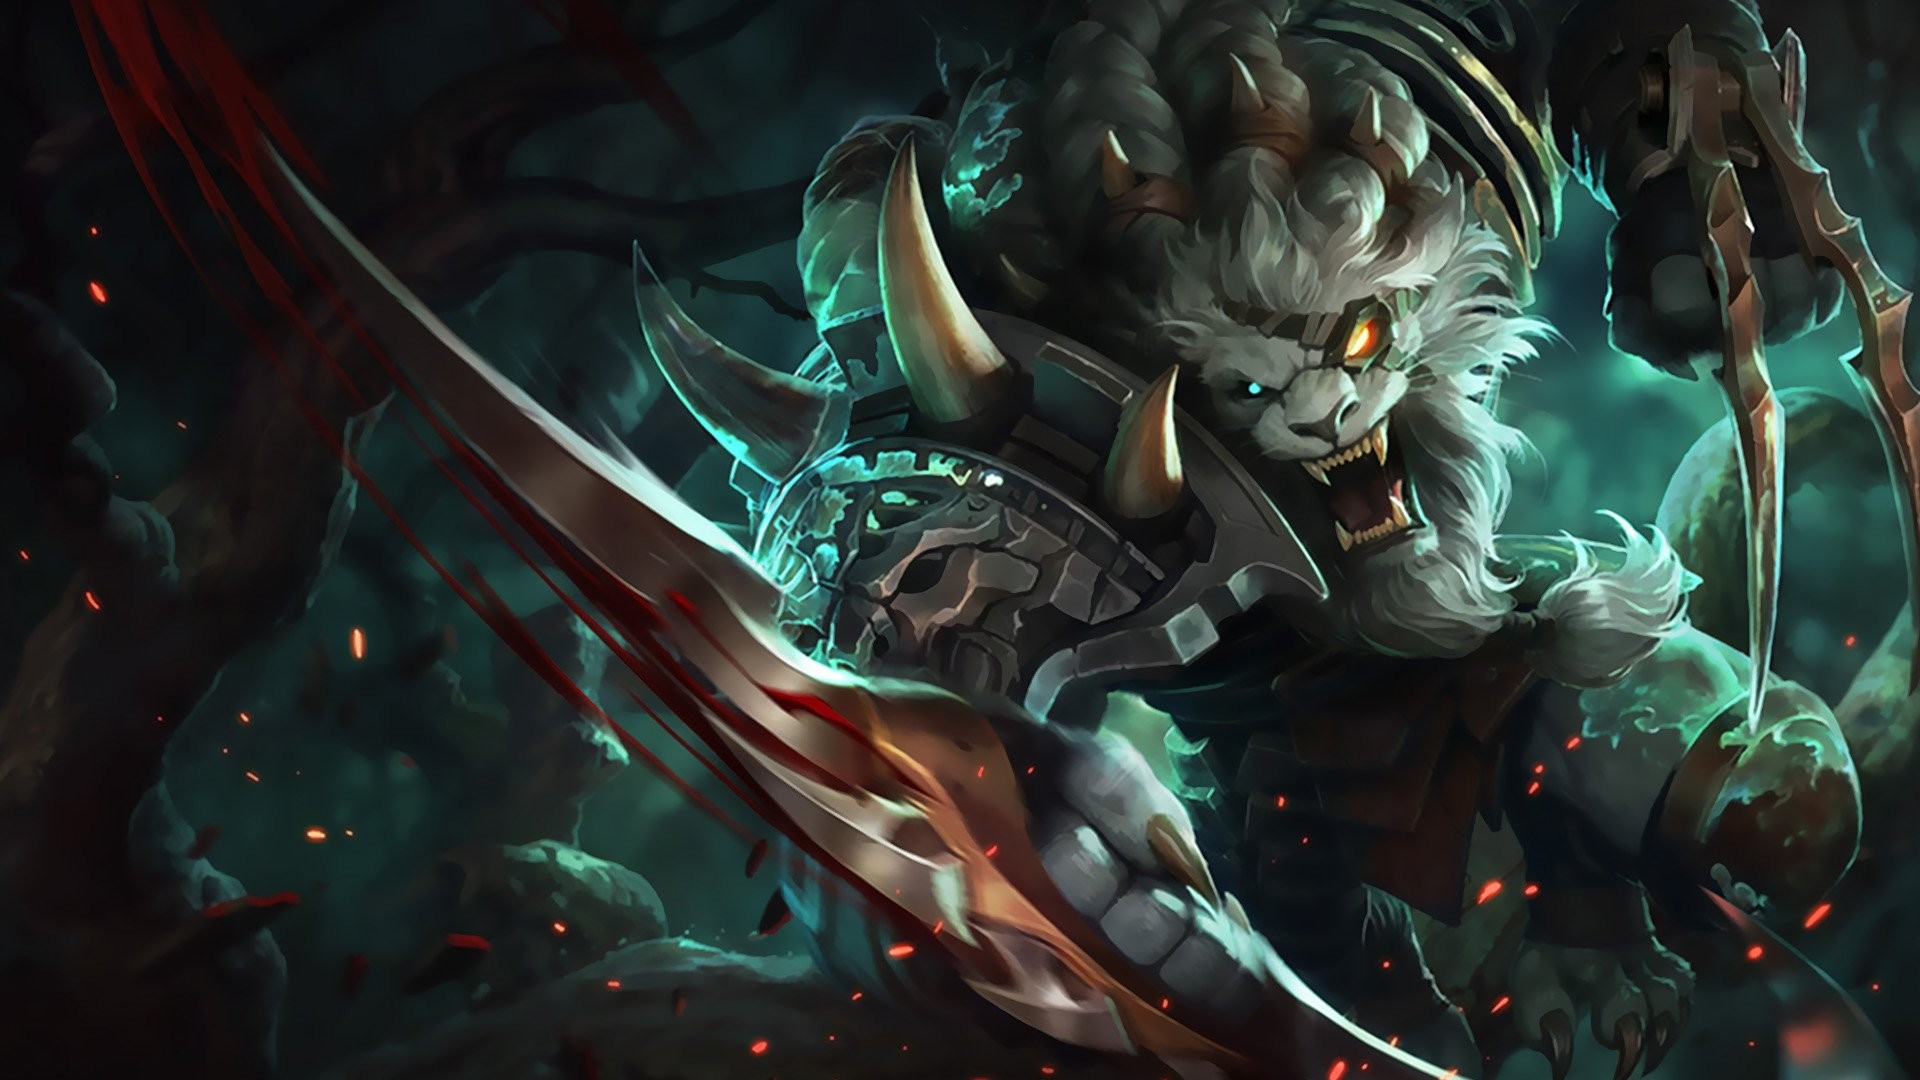 1920x1080 ... League Of Legends Wallpaper Hd Frisch League Legends Wallpapers Collection for Free Download League Of ..